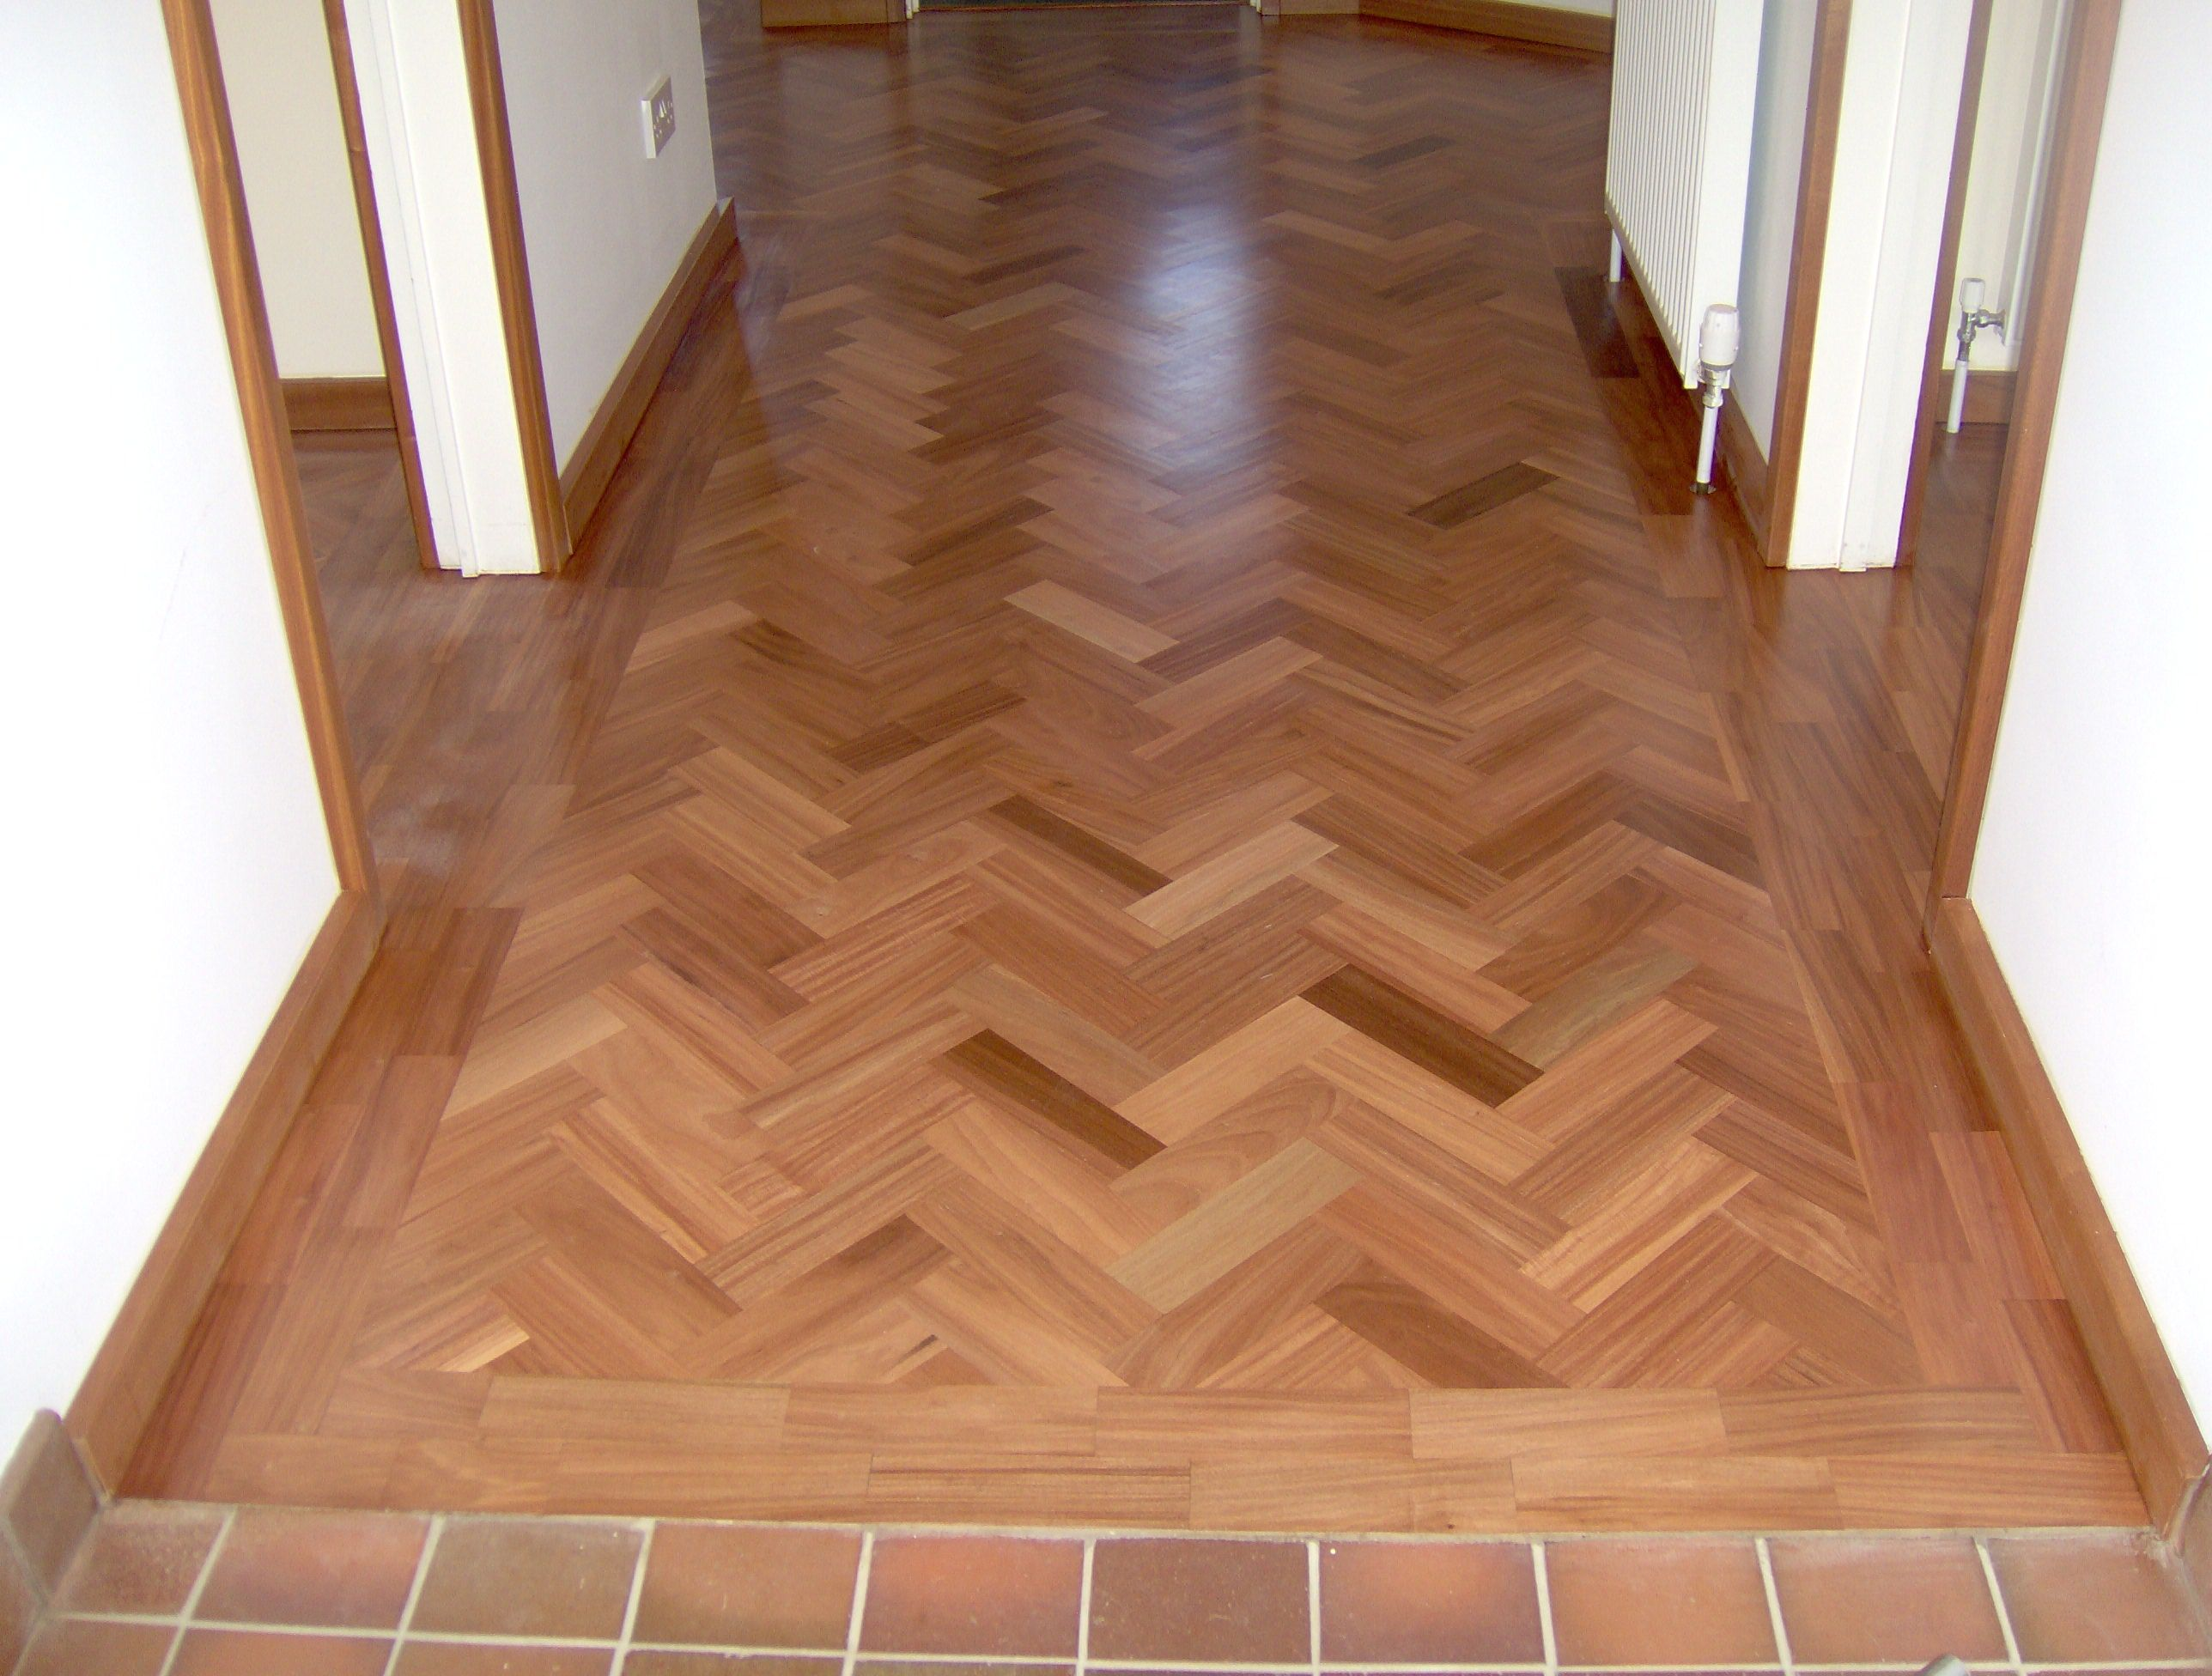 parkay flooring gorgeous reformed home with parkay floor: remarkable white wall and parkay  floor ZUKJYRM